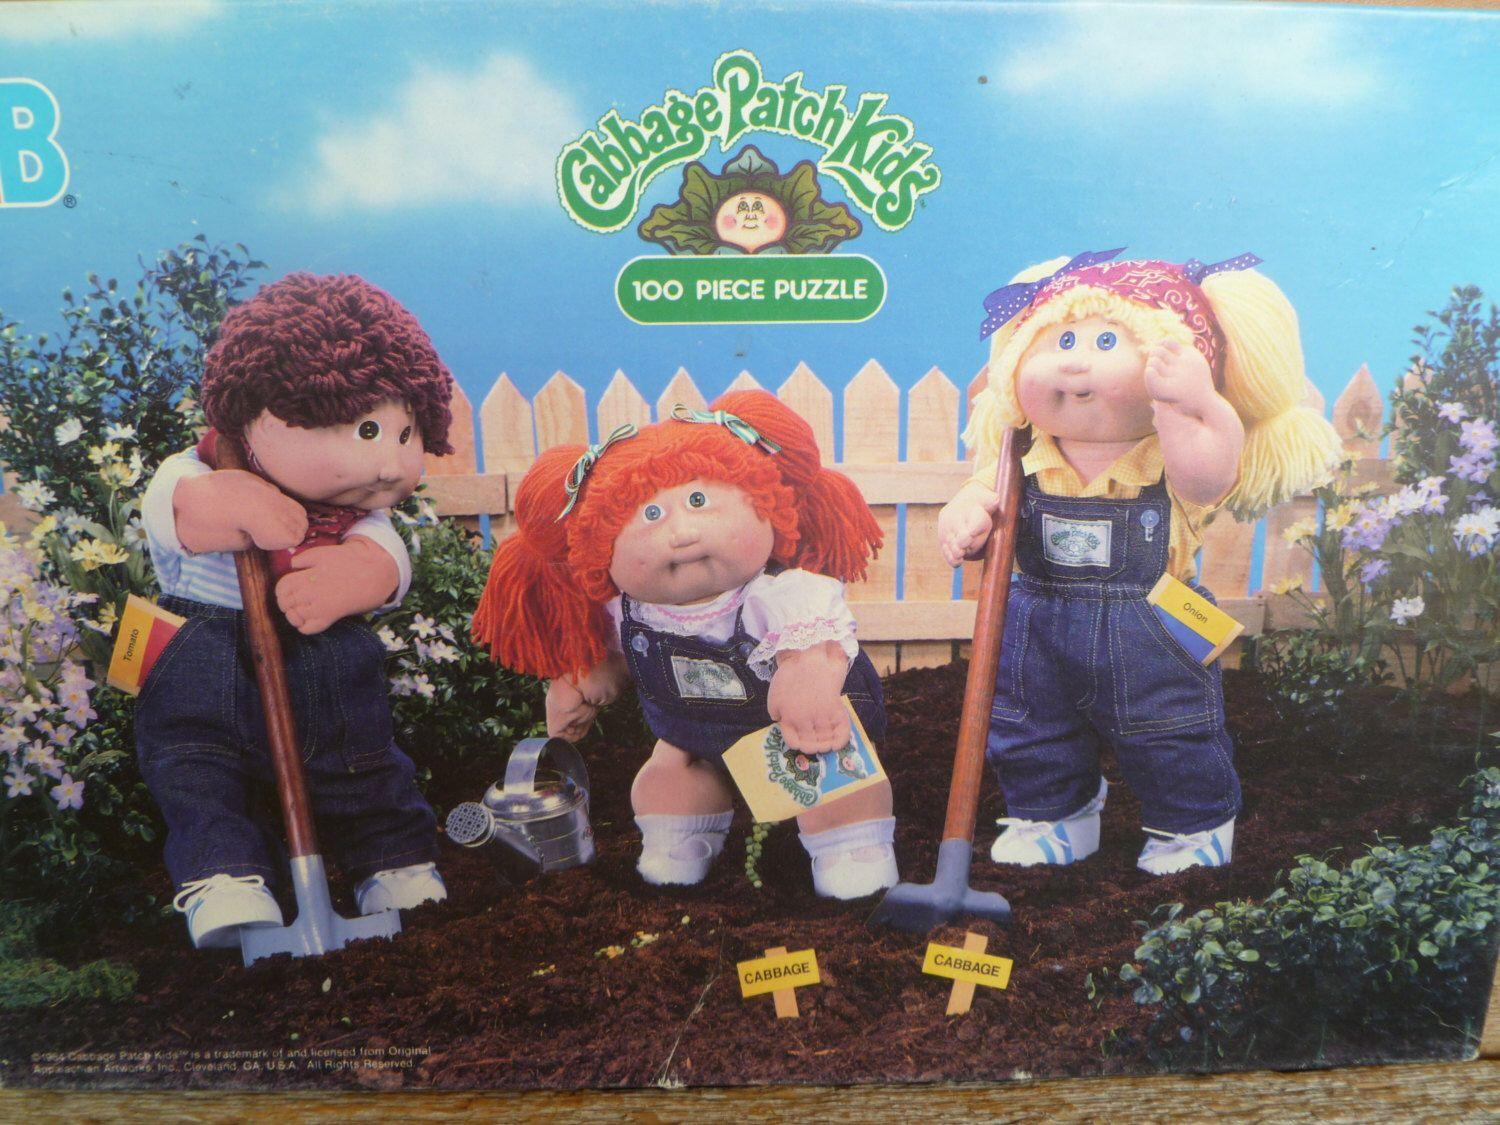 Cabbage Patch Kids Puzzle 1984 Etsy Puzzles For Kids Cabbage Patch Kids Cabbage Patch